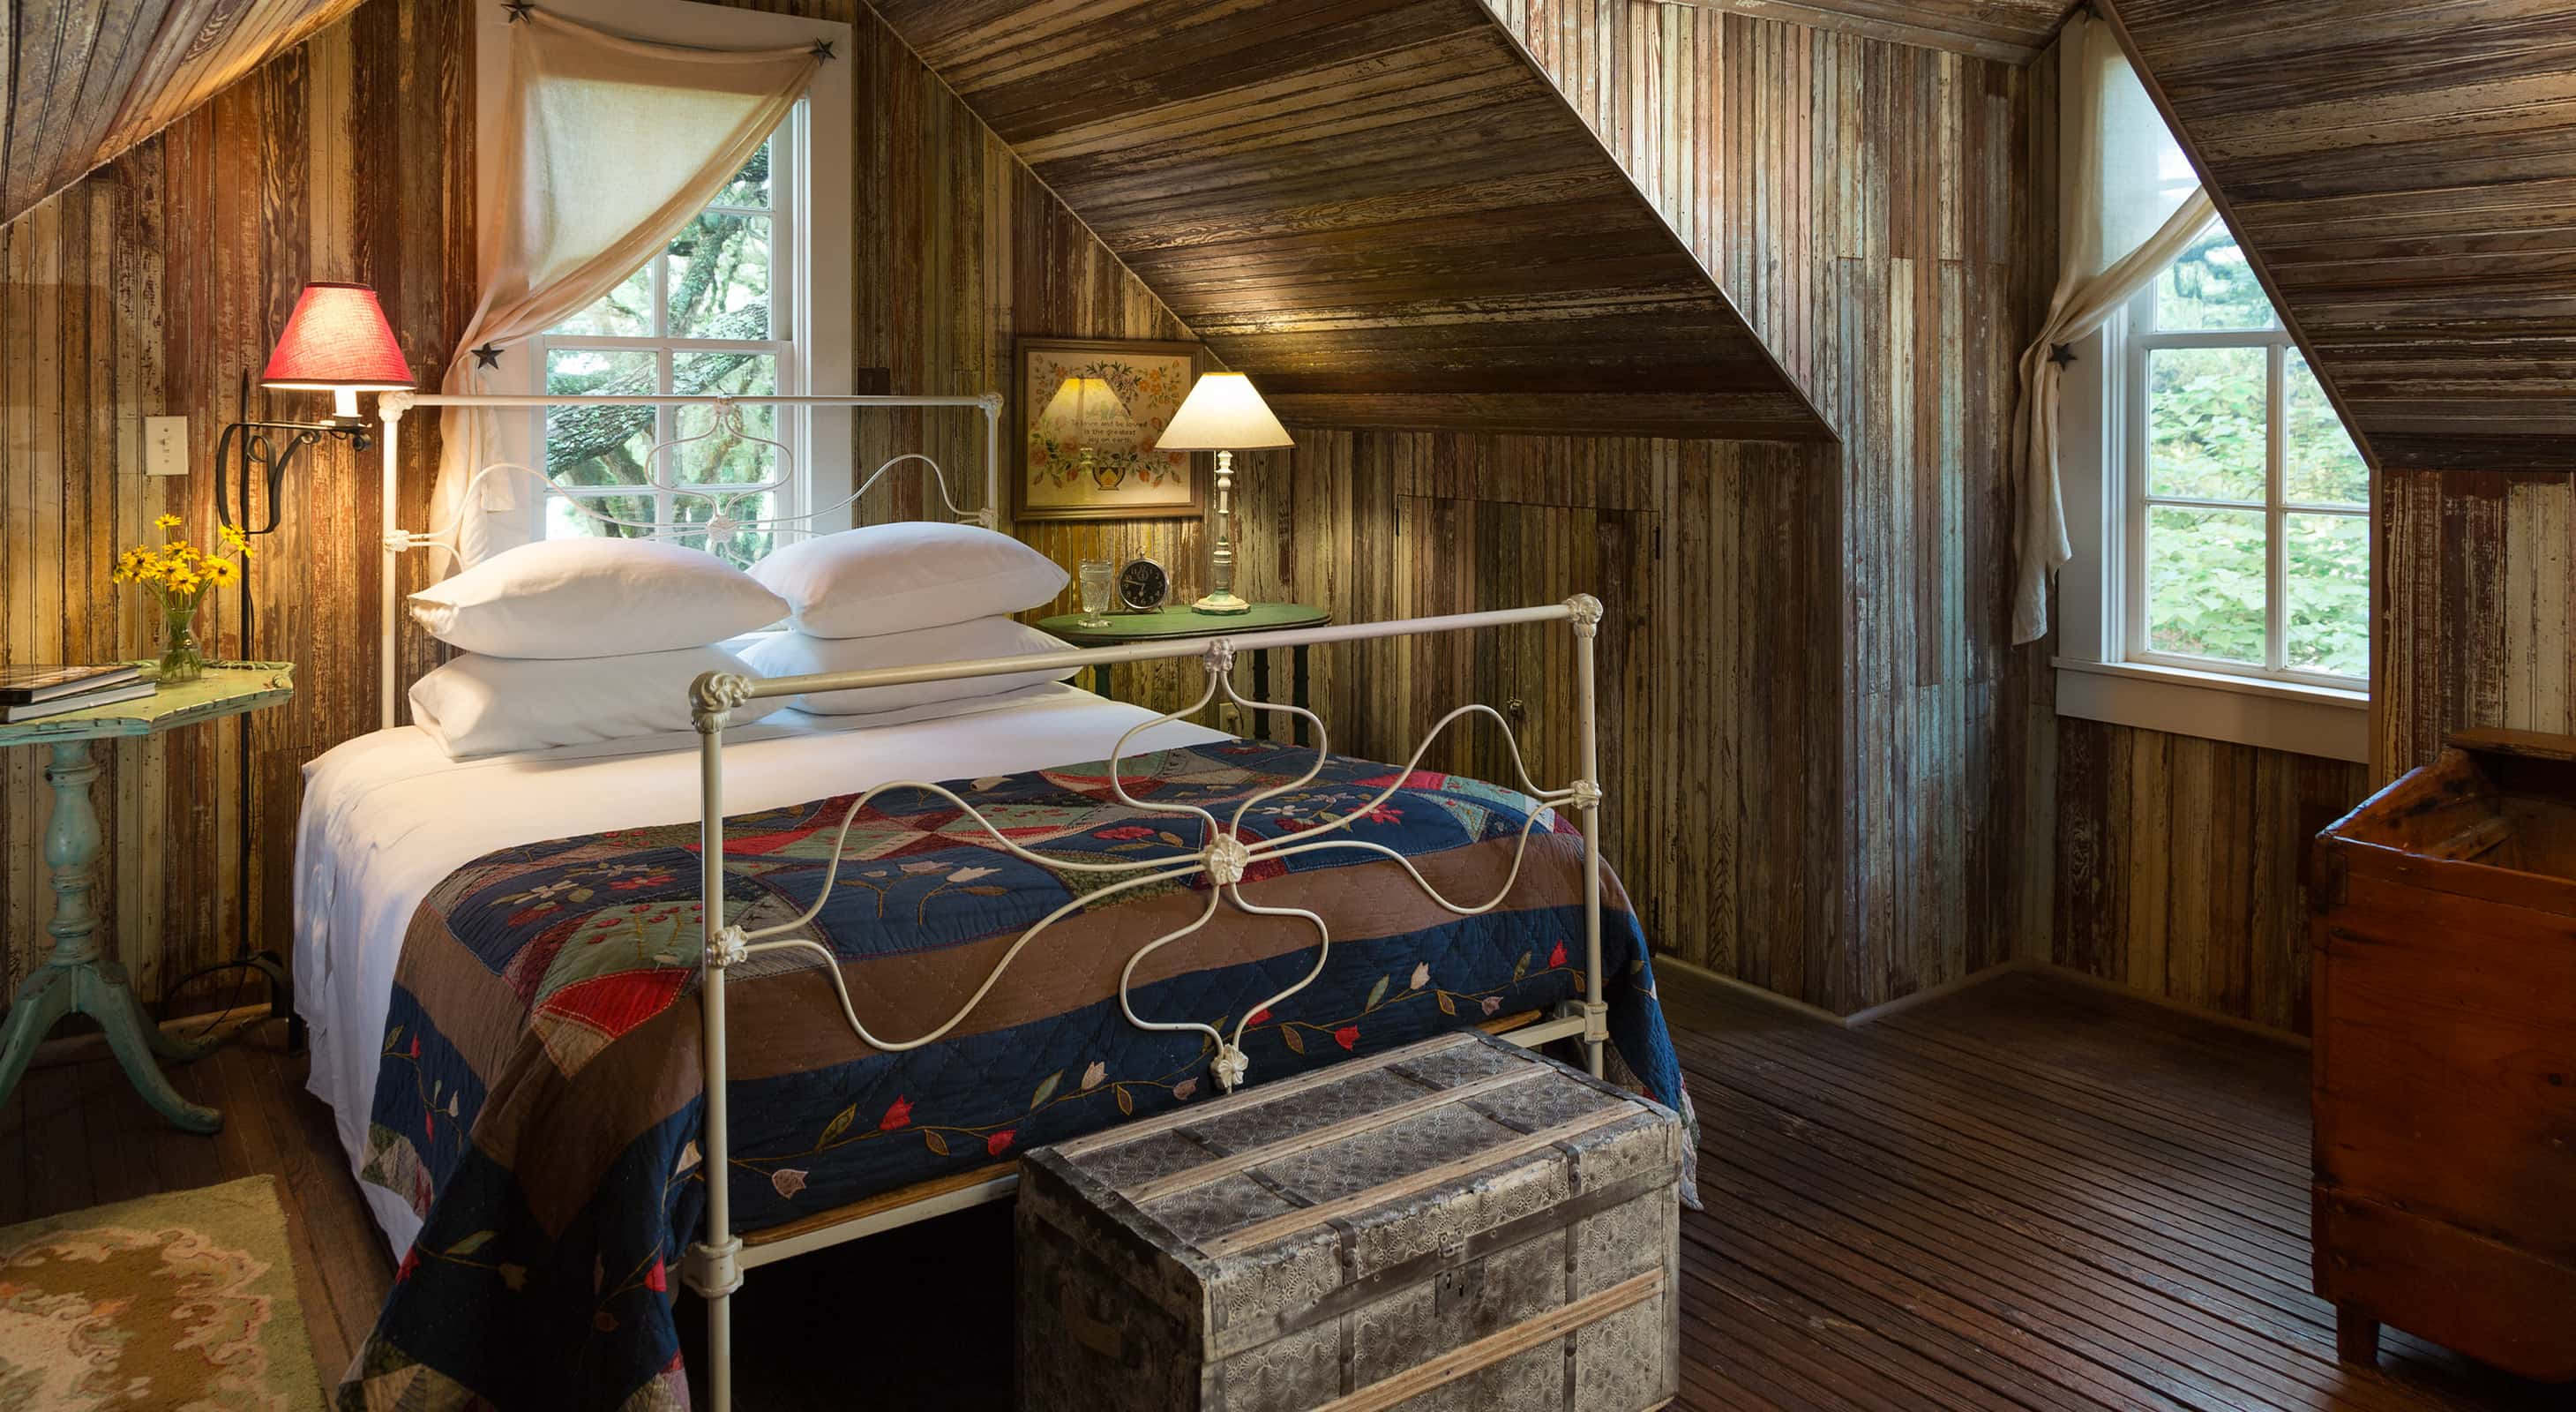 Farmhouse Guest Room with wood walls